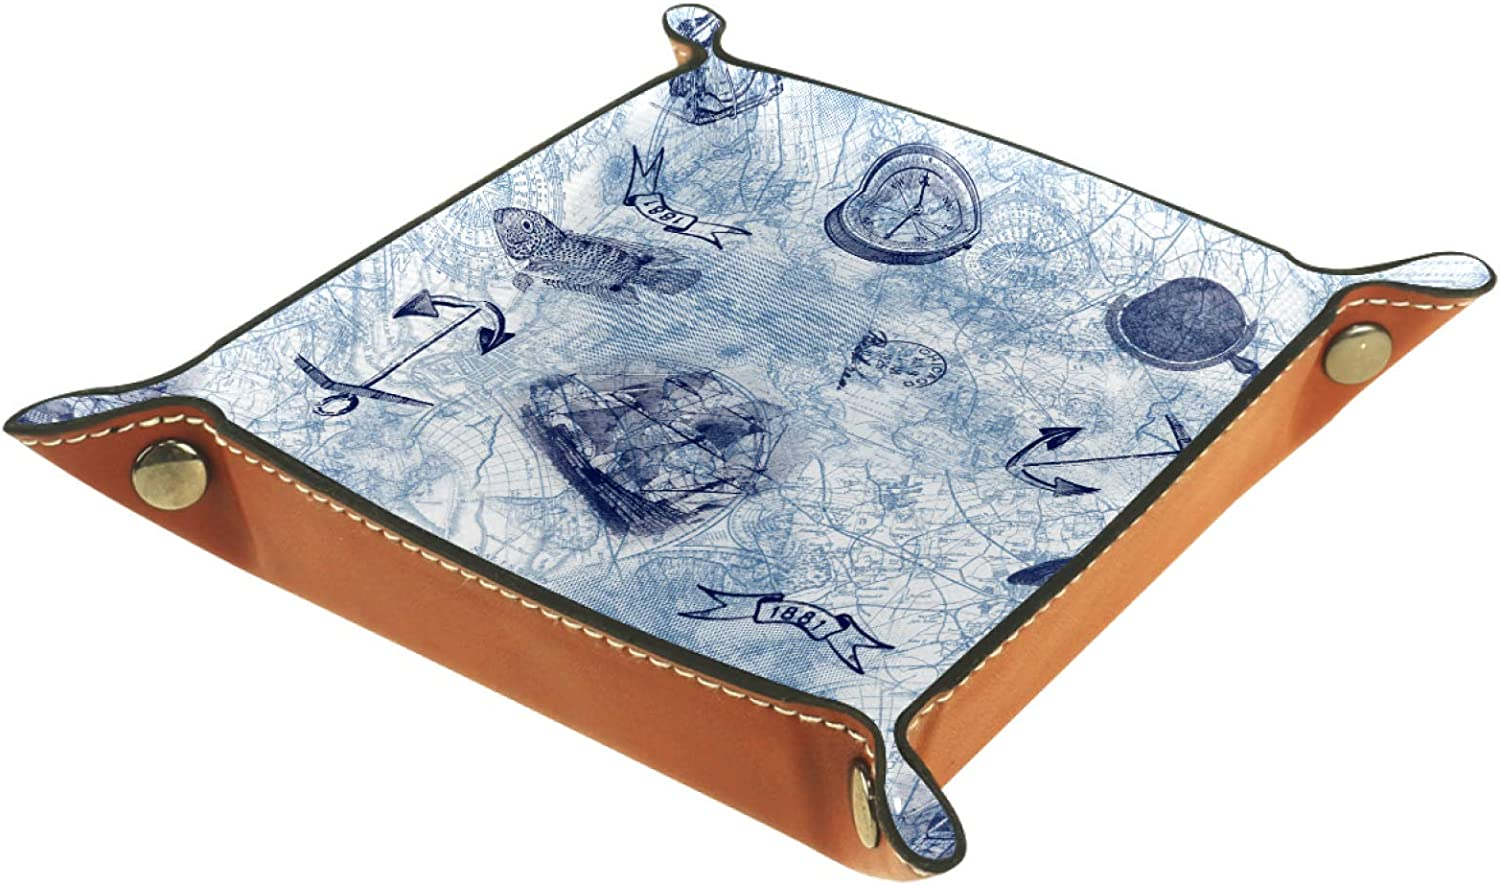 Small Storage Box Mens Valet Tray L Super special Lowest price challenge price Fish Vintage Anchor Nautical